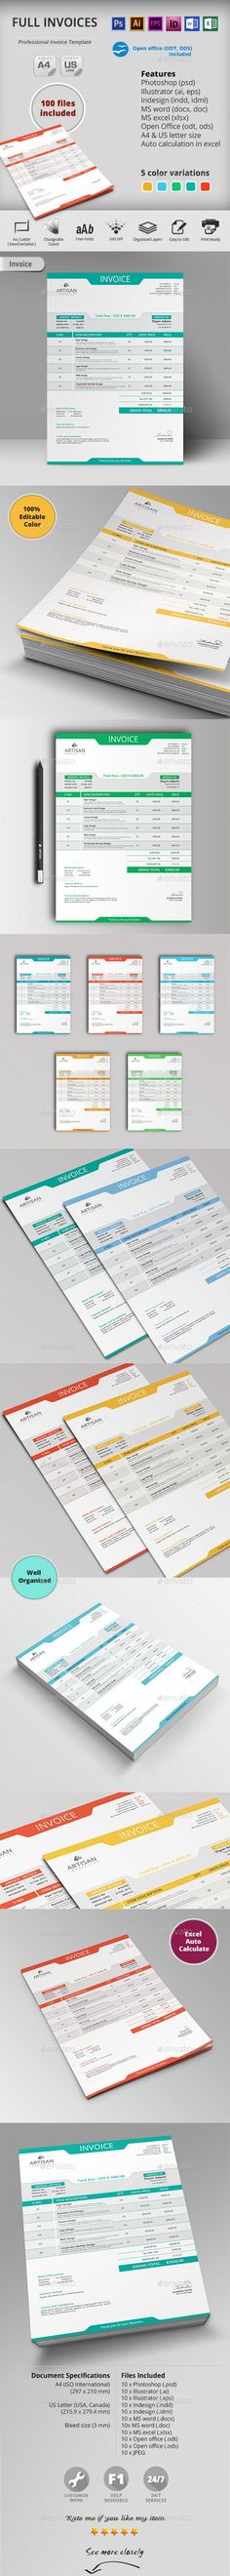 Clean Customisable Invoice Template Template, Print templates - product invoice template